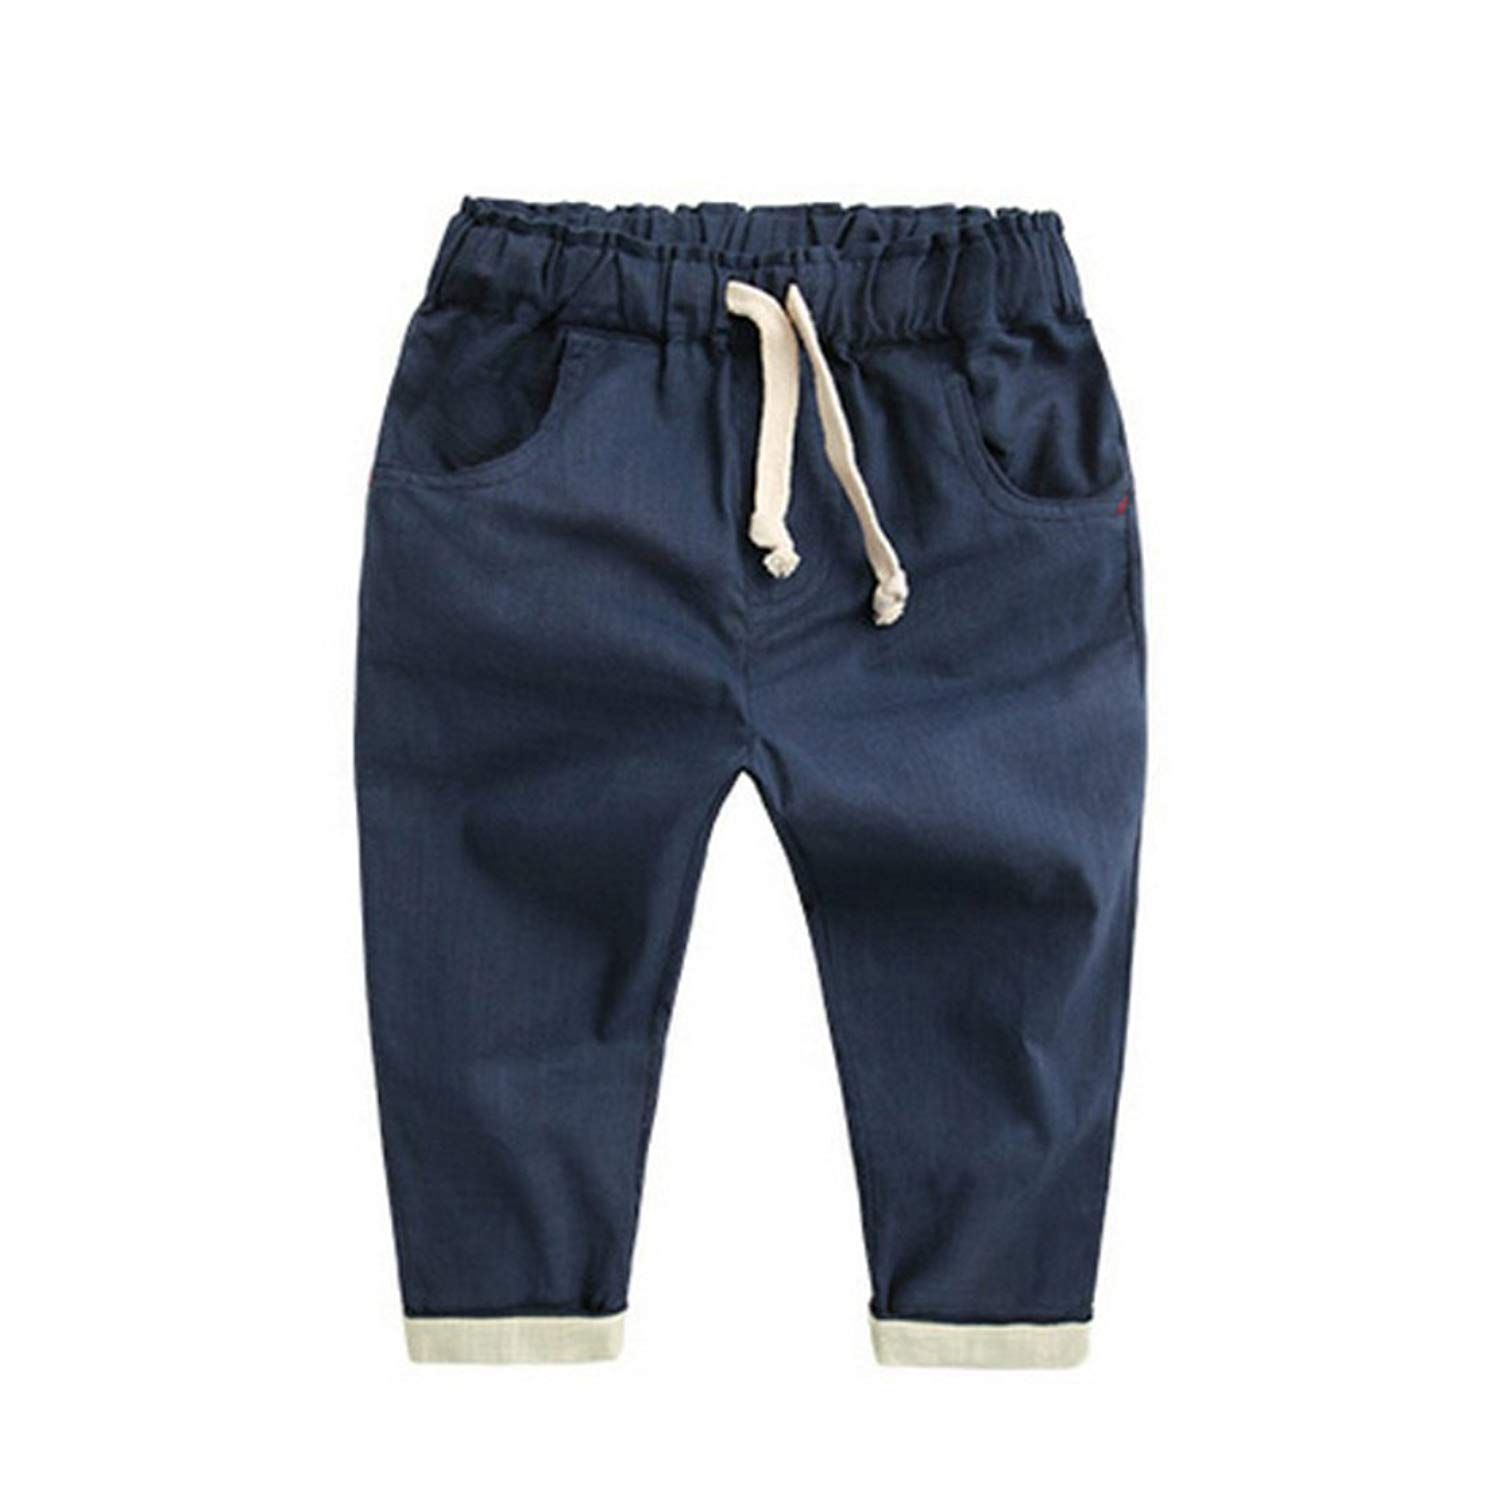 31831217611b Get Quotations · Boy Harem Long Pants Fashion Toddlers Casual Loose Trousers  Summer Bottoms